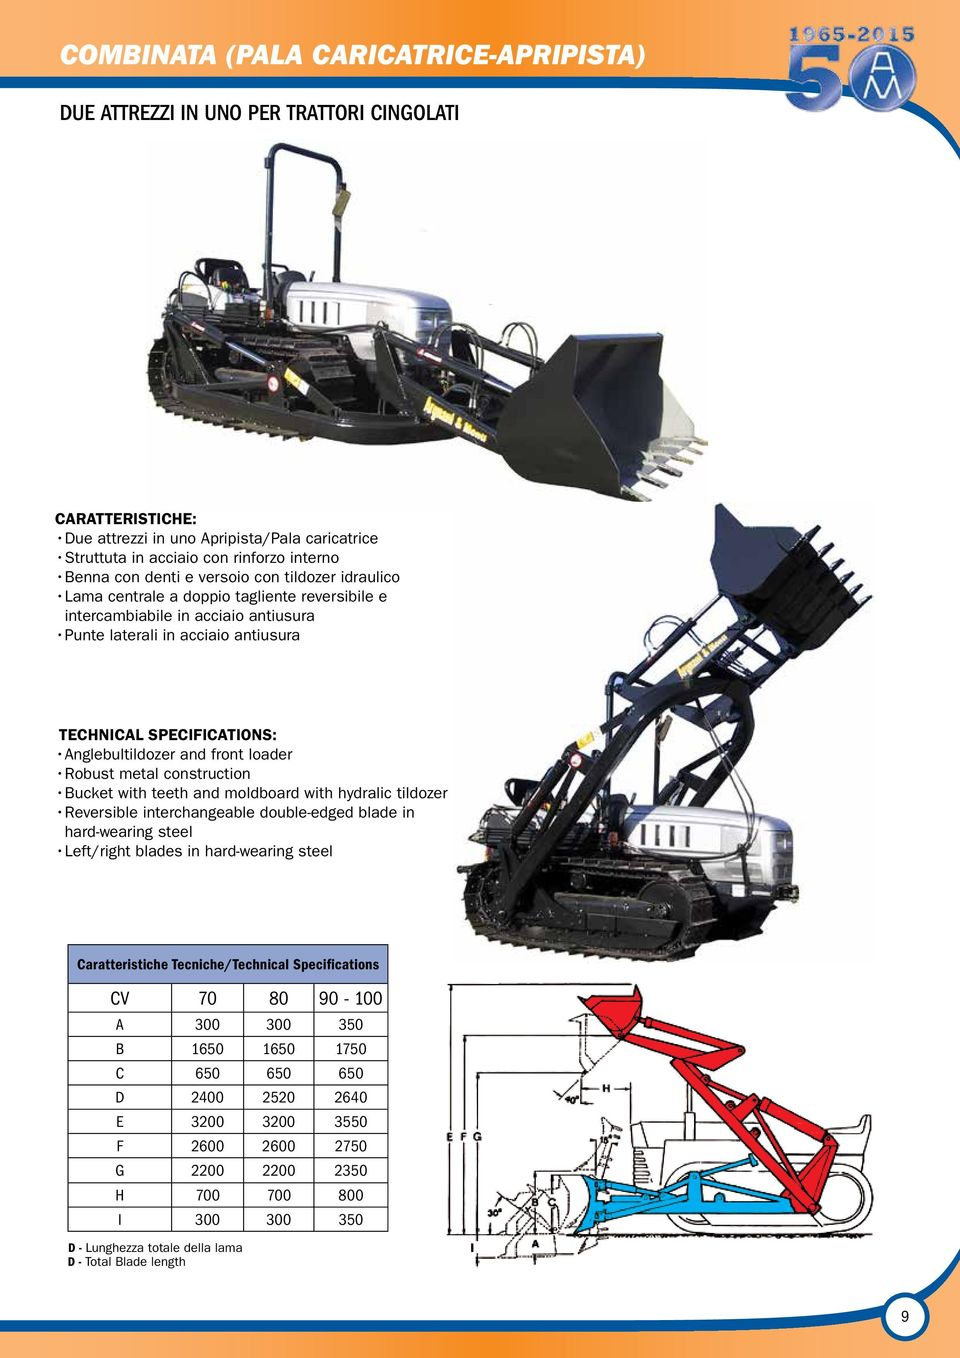 Anglebultildozer and front loader Robust metal construction Bucket with teeth and moldboard with hydralic tildozer Reversible interchangeable double-edged blade in hard-wearing steel Left/right